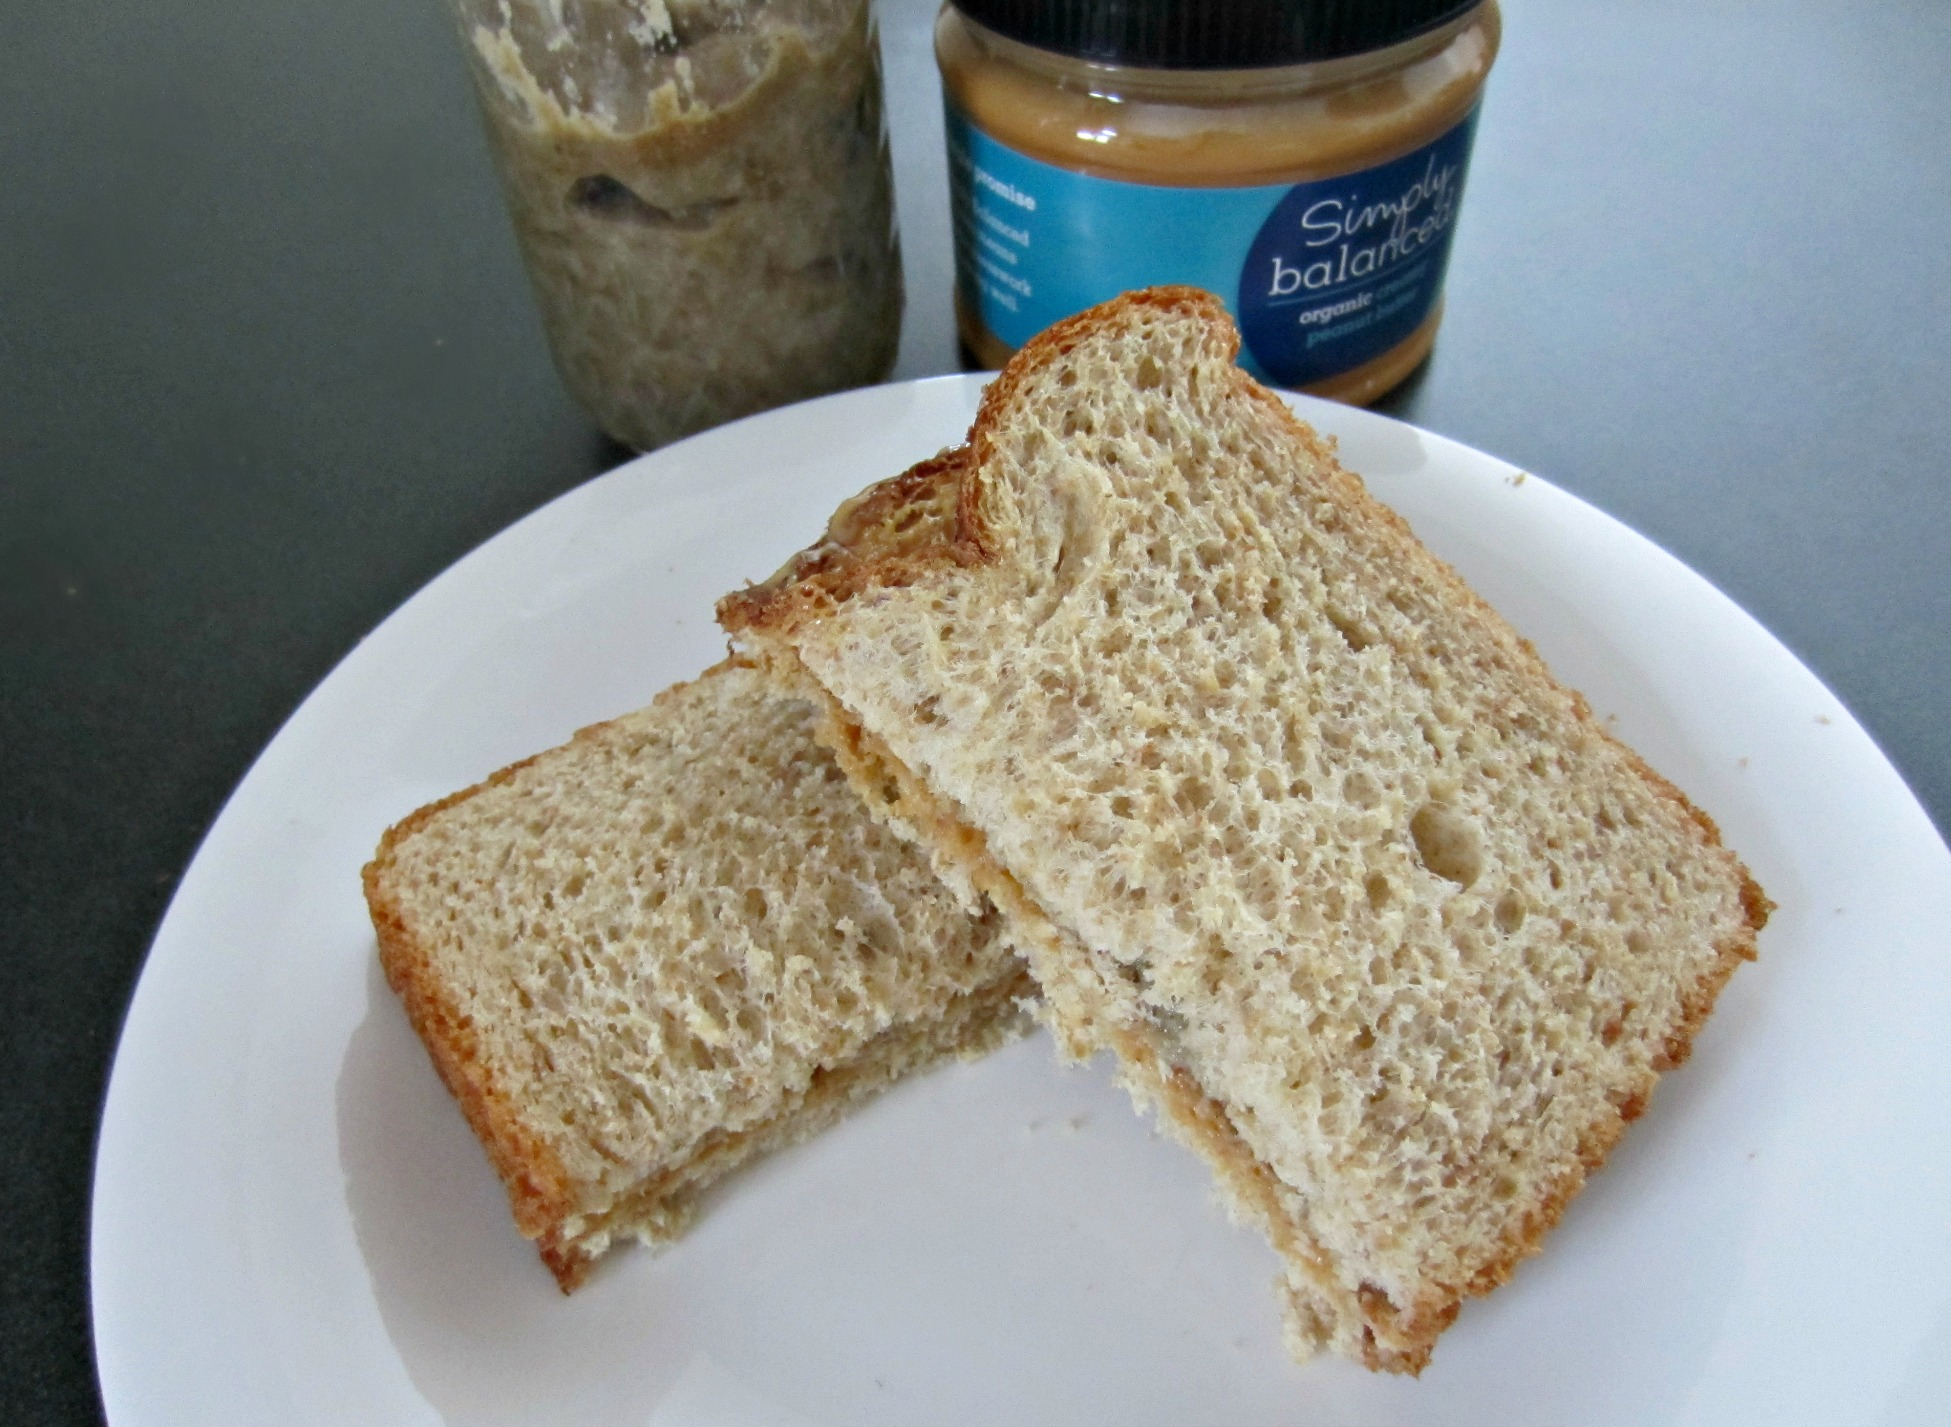 peanut butter and chia jam sandwich